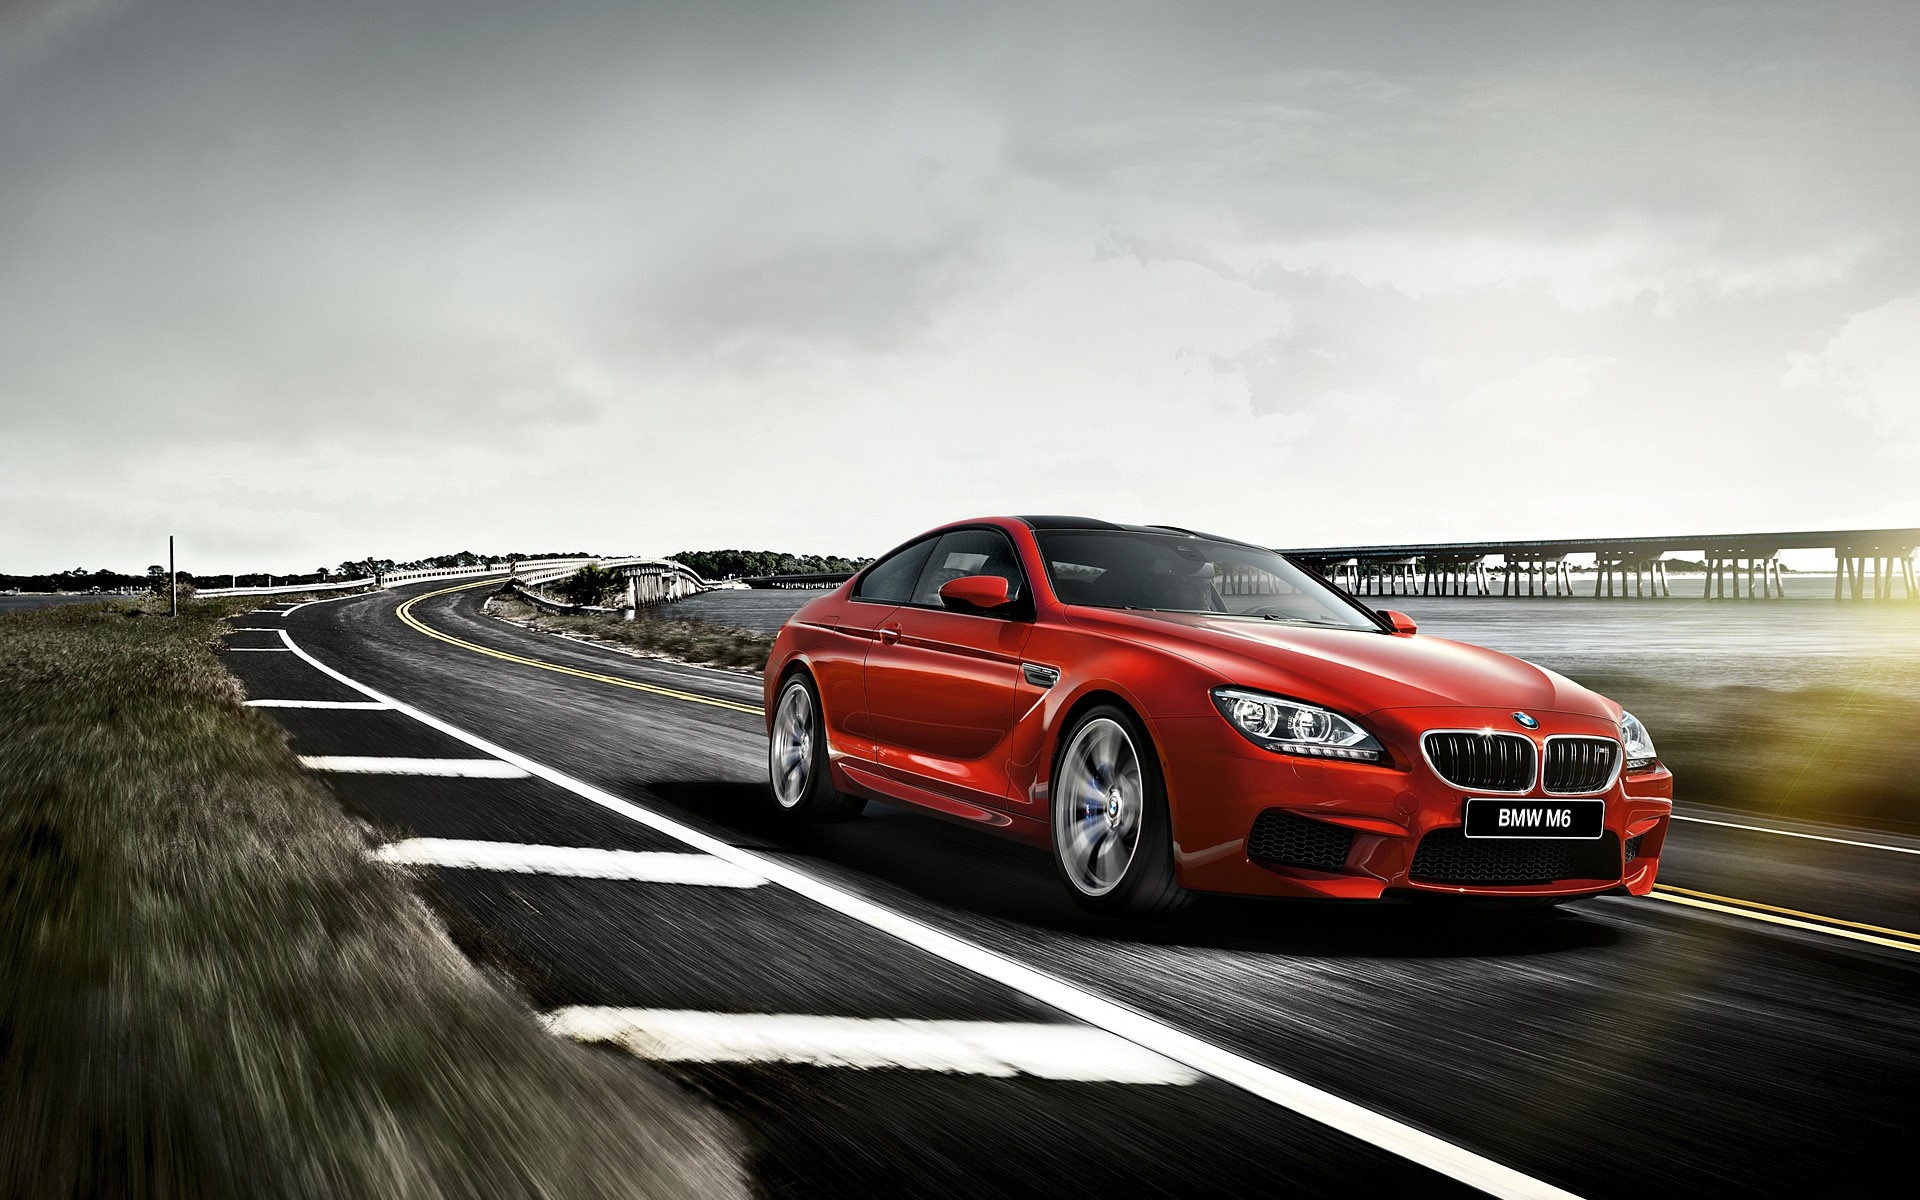 2015 Bmw M6 F13 Coupe Wallpaper Hd Car Wallpapers Id 5892 ...